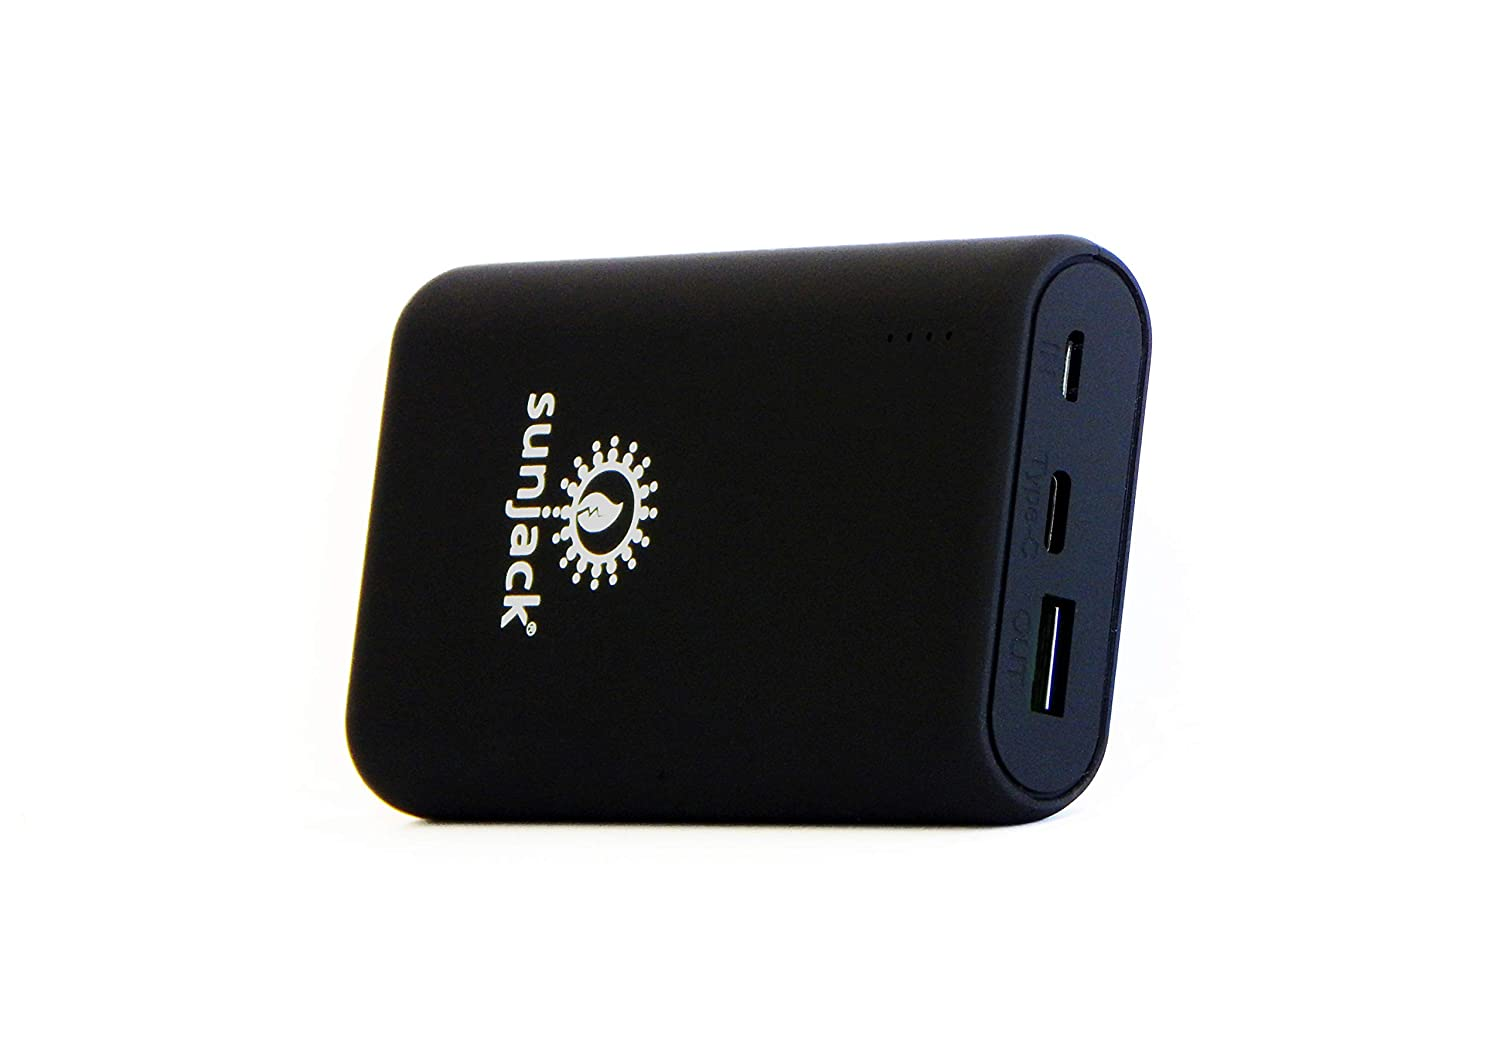 Amazon.com: sunjack 8000 mAh Portable USB Power Bank ...